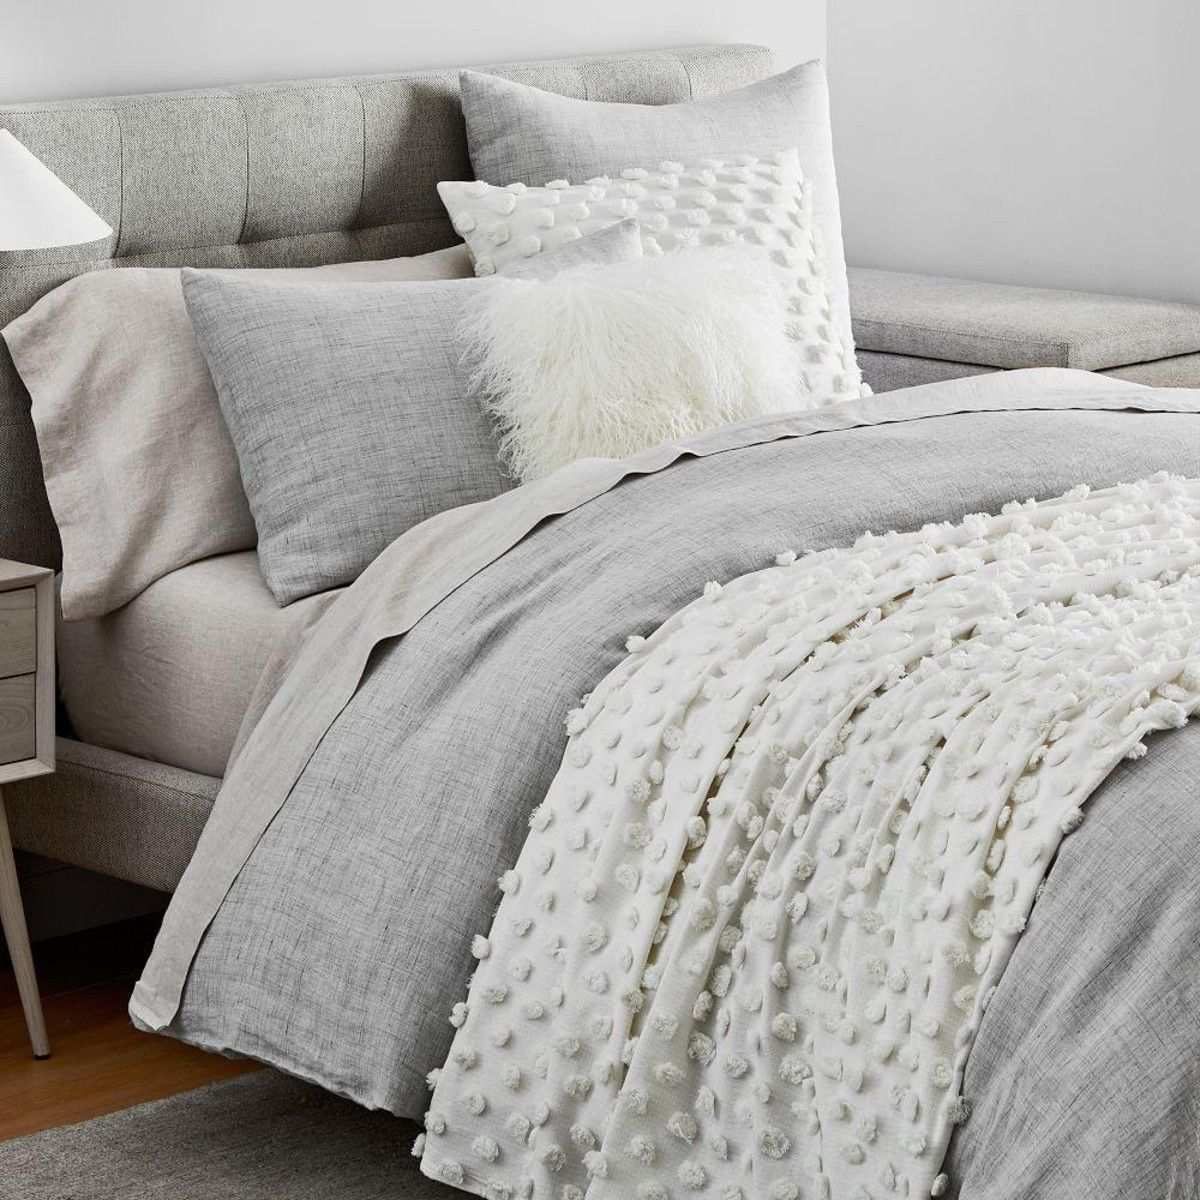 Frost Grey Belgian Flax Linen Fiber Dyed Styled Bedding Set West Elm Canada In 2020 Grey Bedding Master Bedroom Bedding Master Bedroom Bed Styling